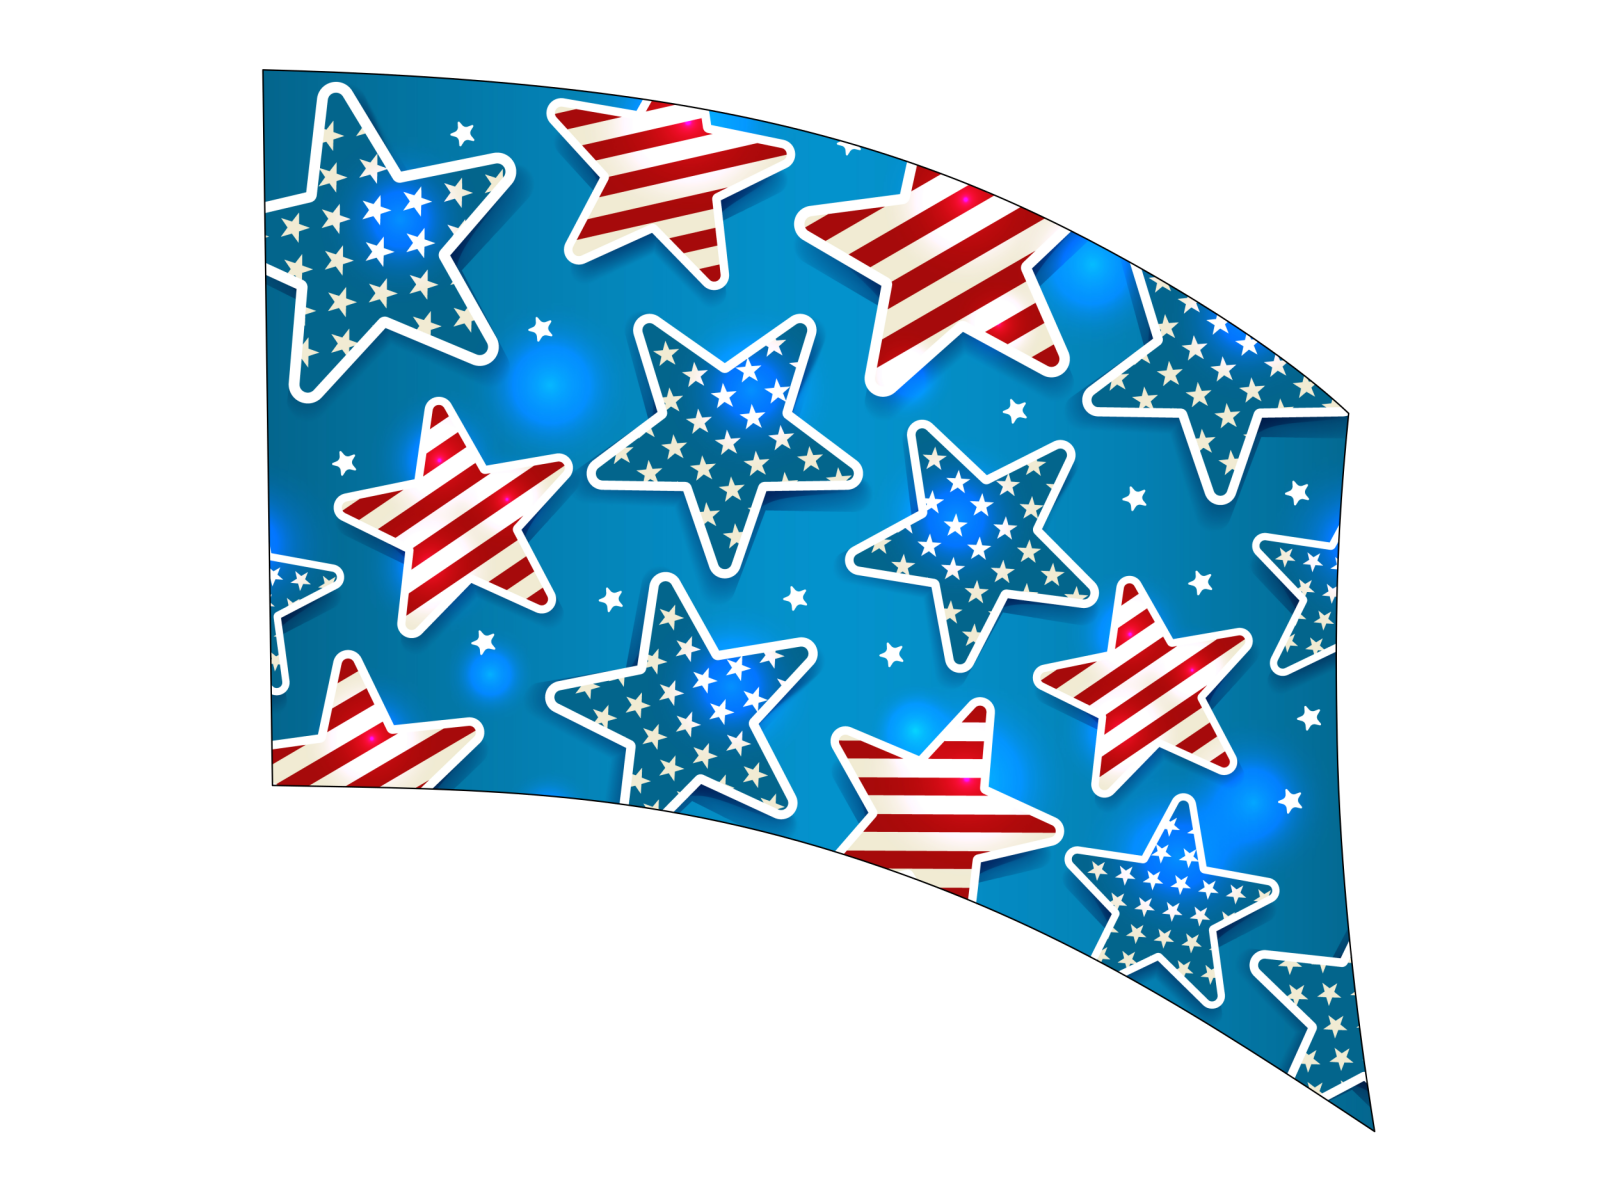 060214s - 36x52 Standard Stars and Stripes in Stars